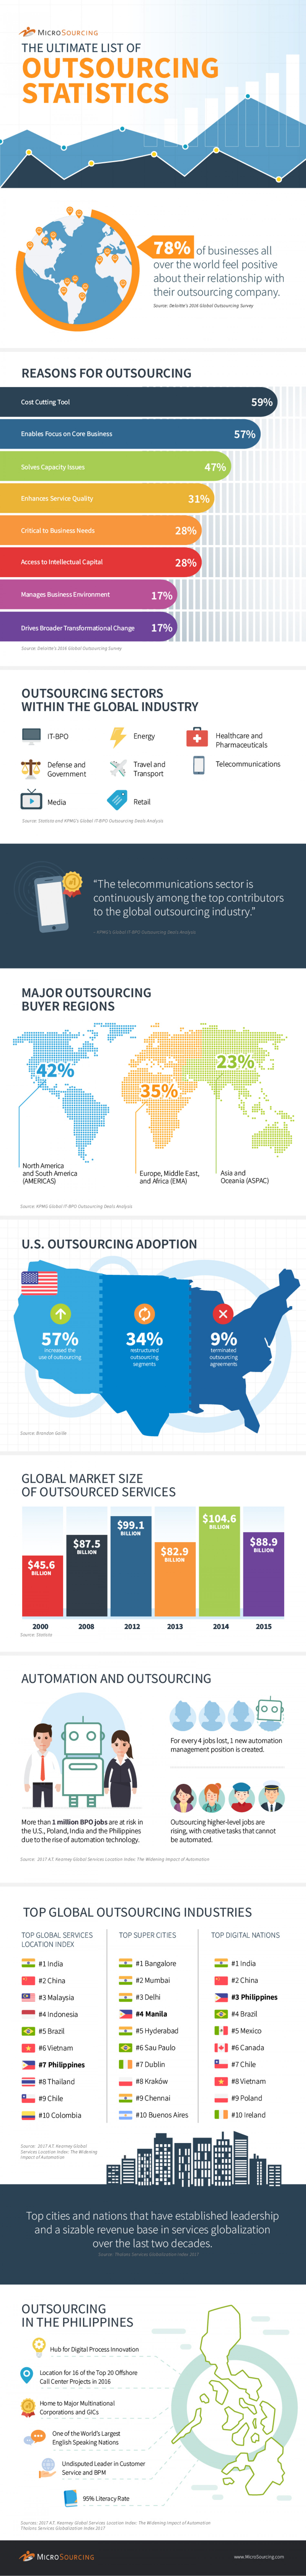 The Ultimate List of Outsourcing Statistics Infographic